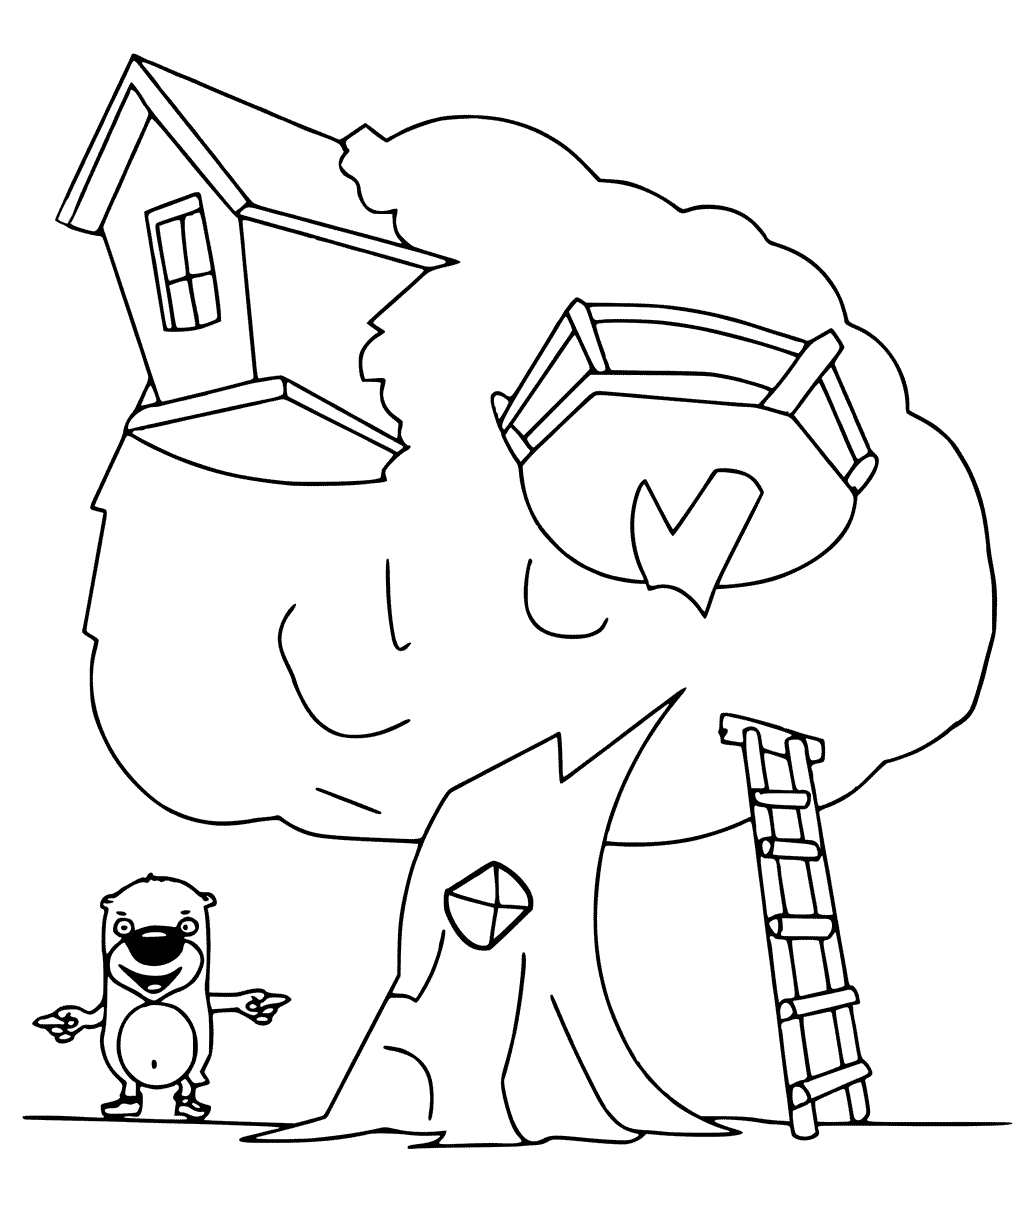 treehouse coloring pages treehouse coloring pages best coloring pages for kids treehouse coloring pages